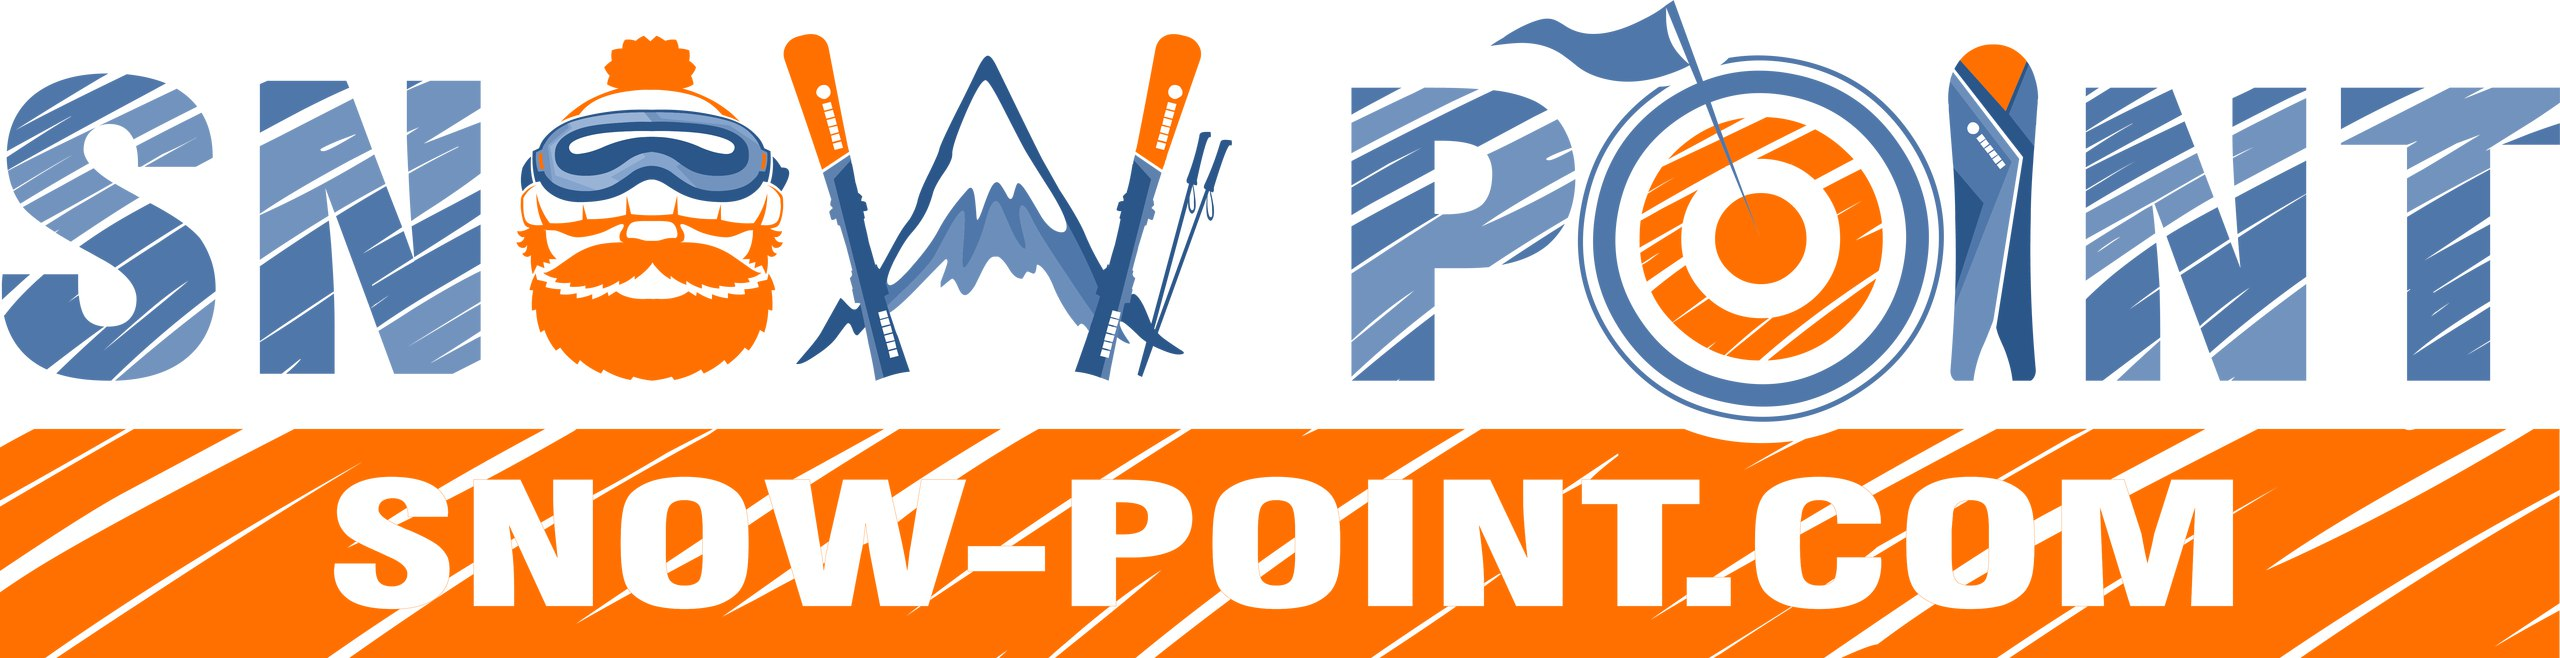 snow-point.com all in one ski suits and freeski clothing